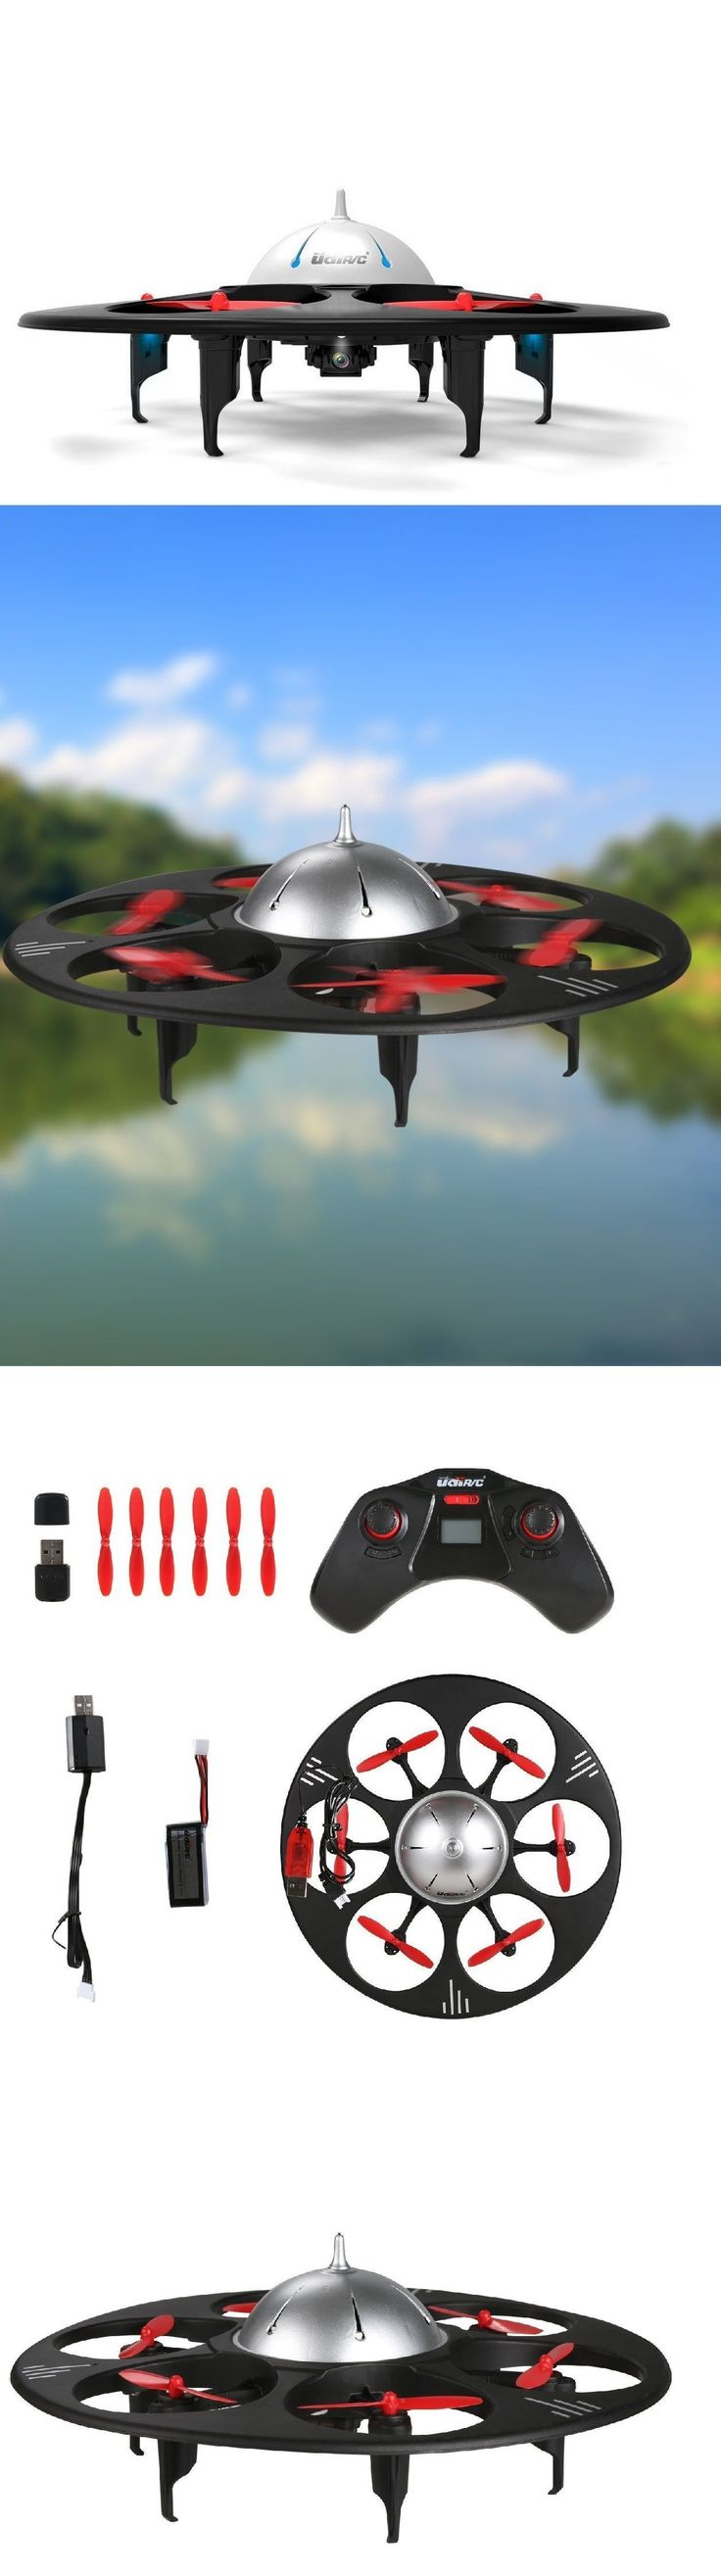 RC UFO Flying Saucer With HD Video Camera #quadcopter